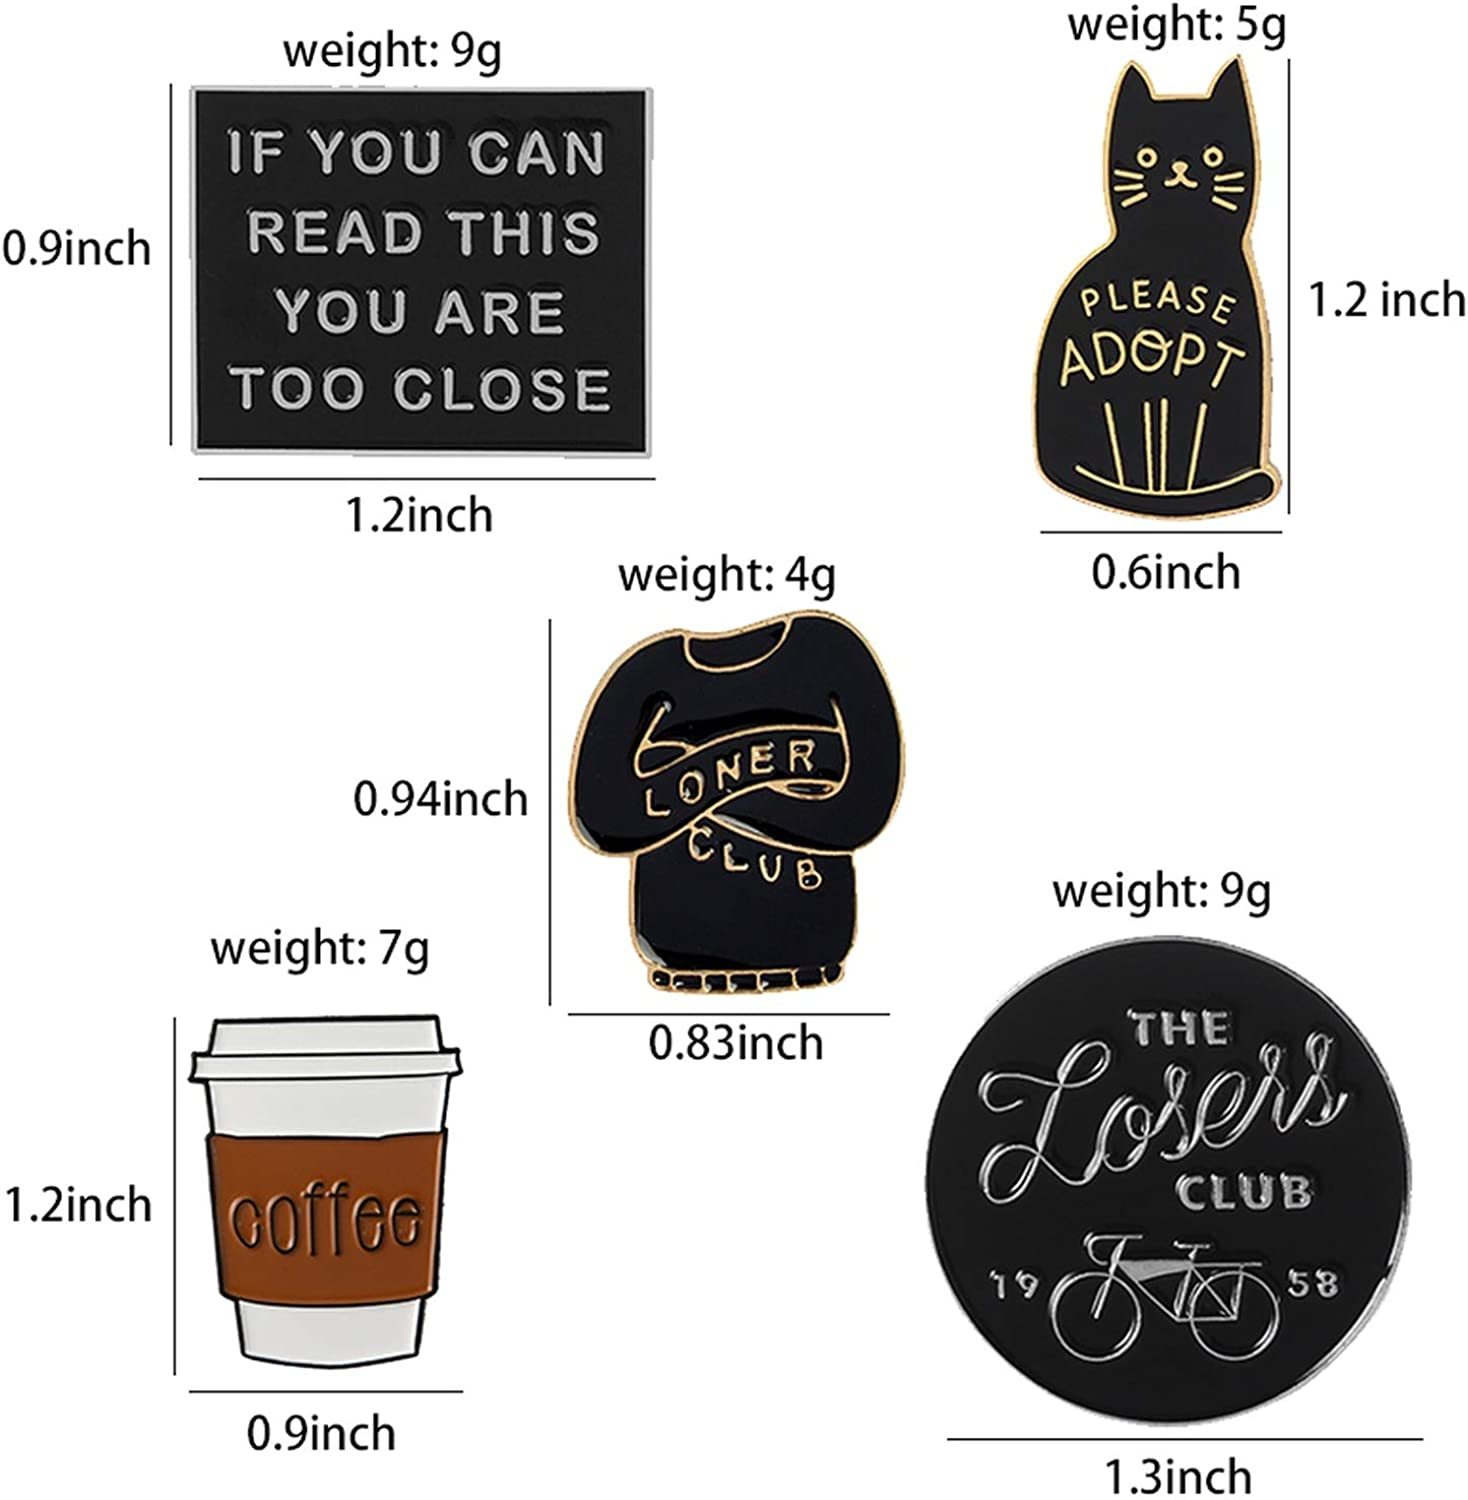 Charming-Fairy Introvert Loner Loser Club Enamel Pins Autism Badges Cat Brooches Bag Clothes Lapel Pin Punk Black White Jewelry Gift